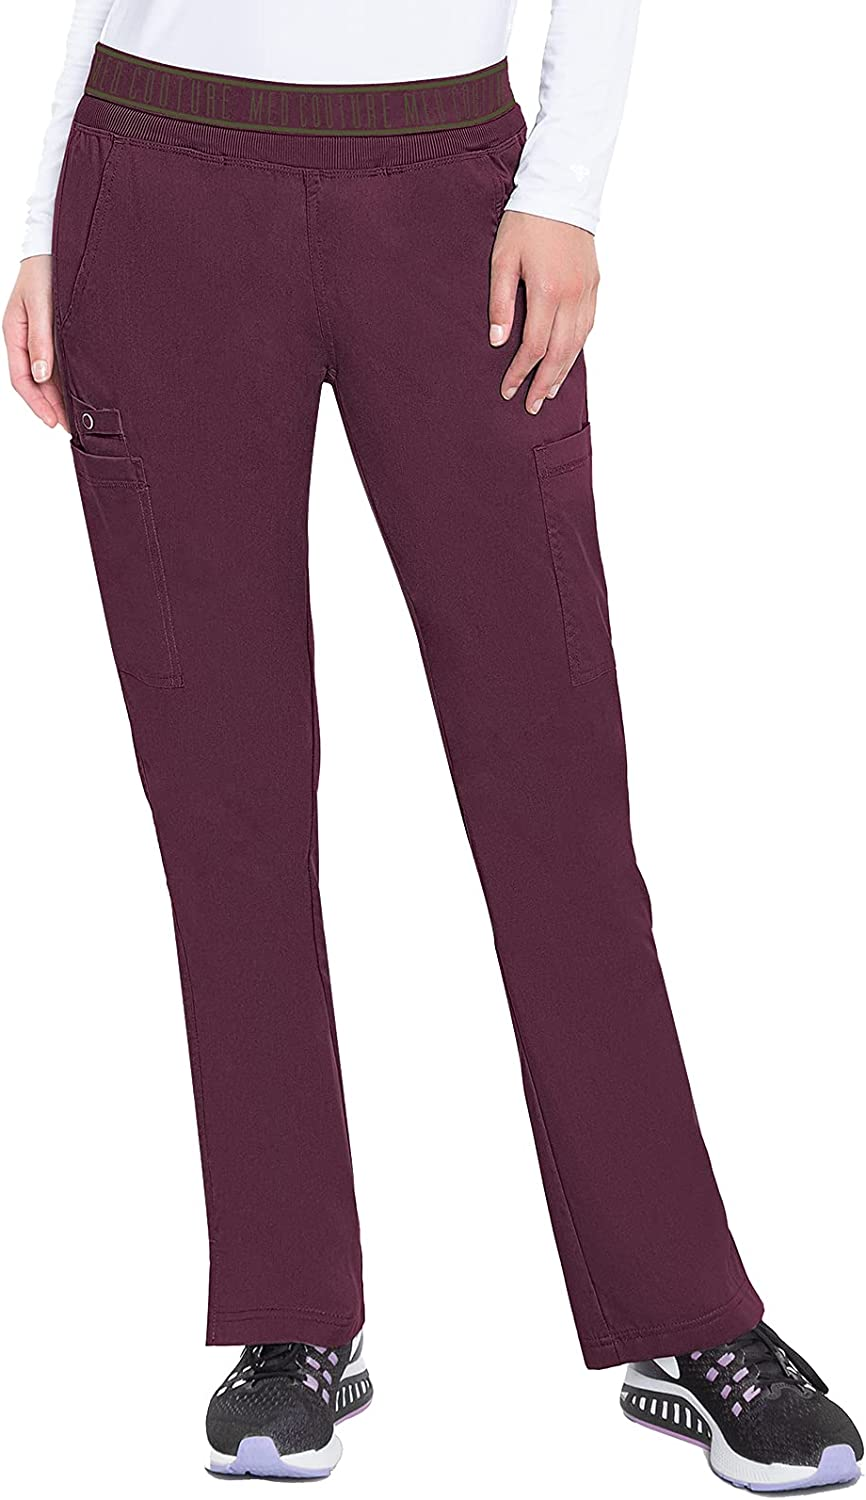 Med Couture Touch Women's Yoga Cargo Pocket Pant Sale special price Trust 2